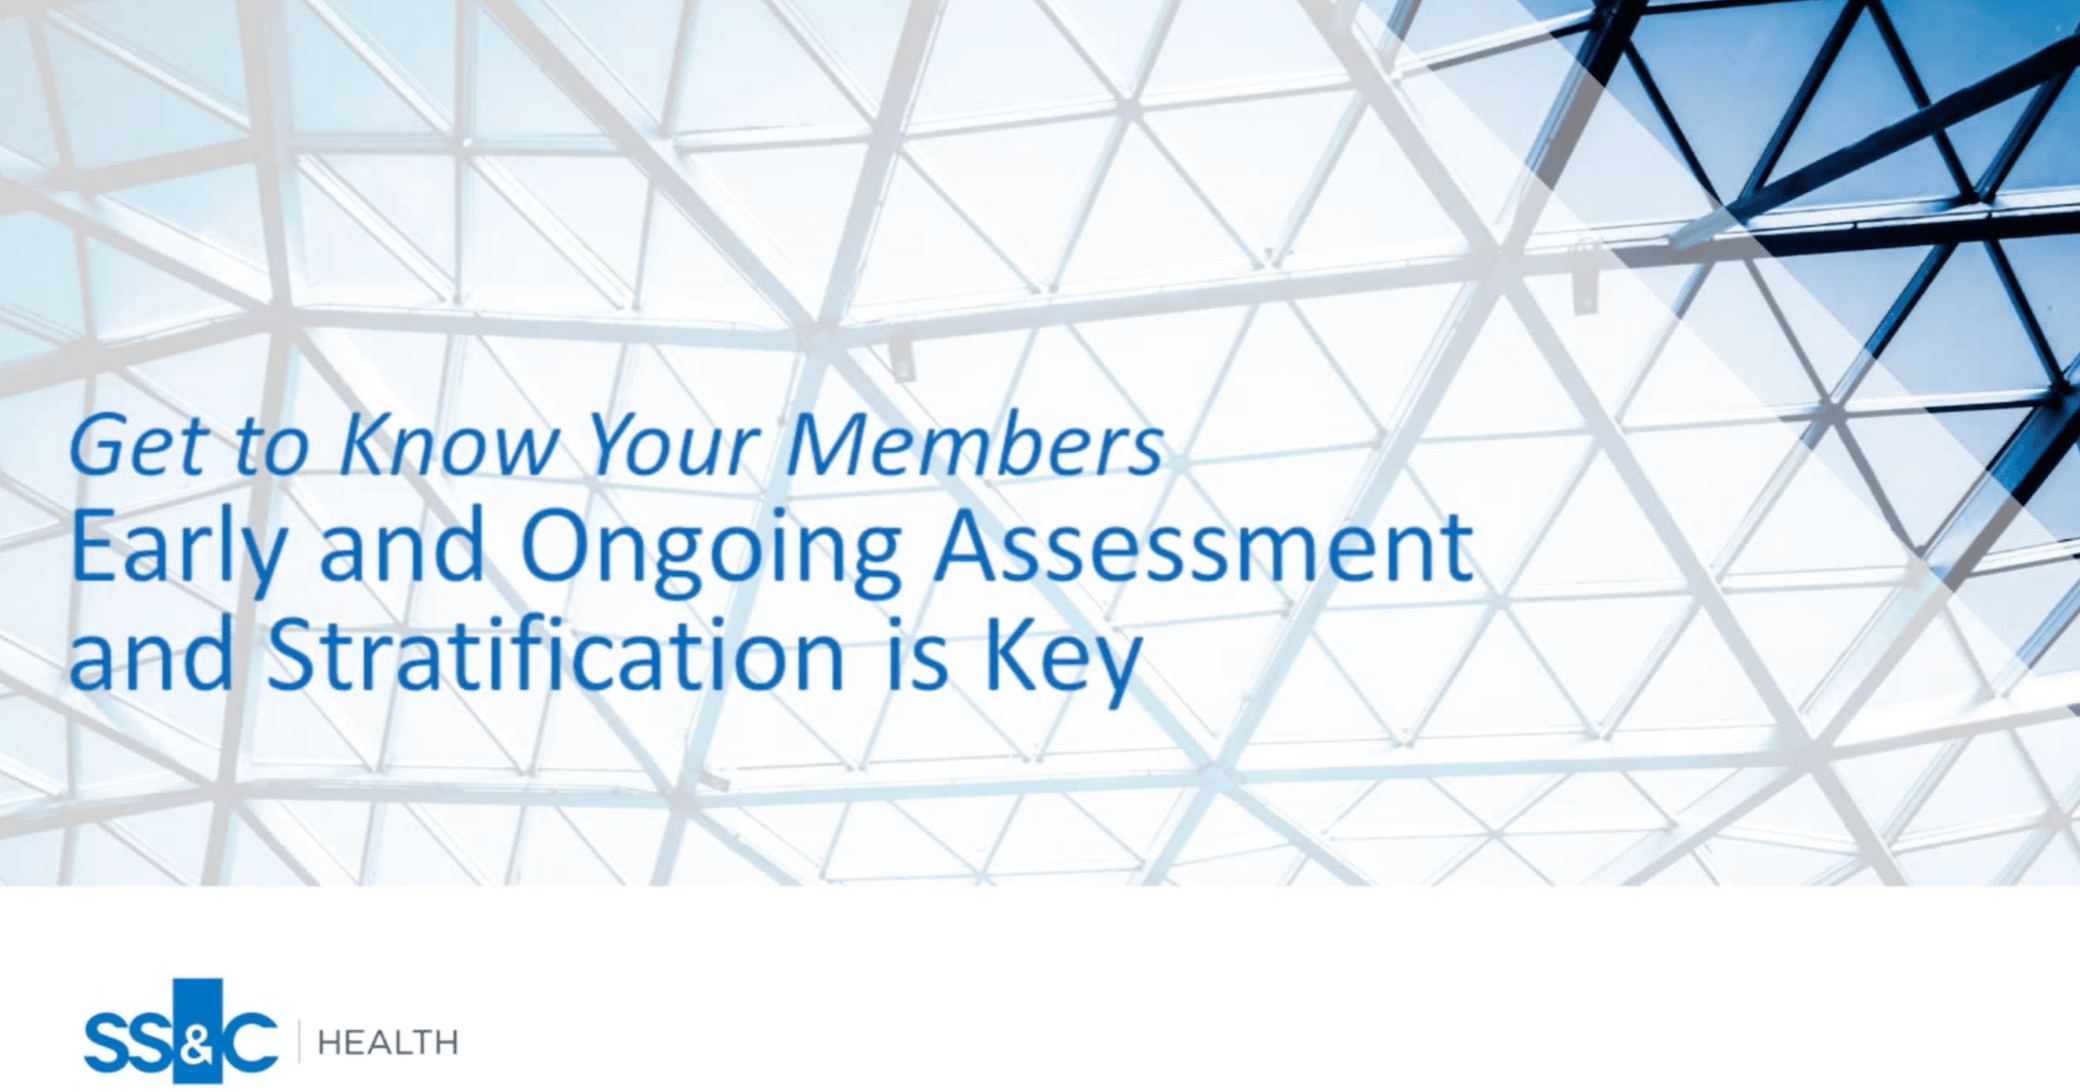 Get to Know Your Medicare Advantage Members: Early Assessment and Stratification is Key